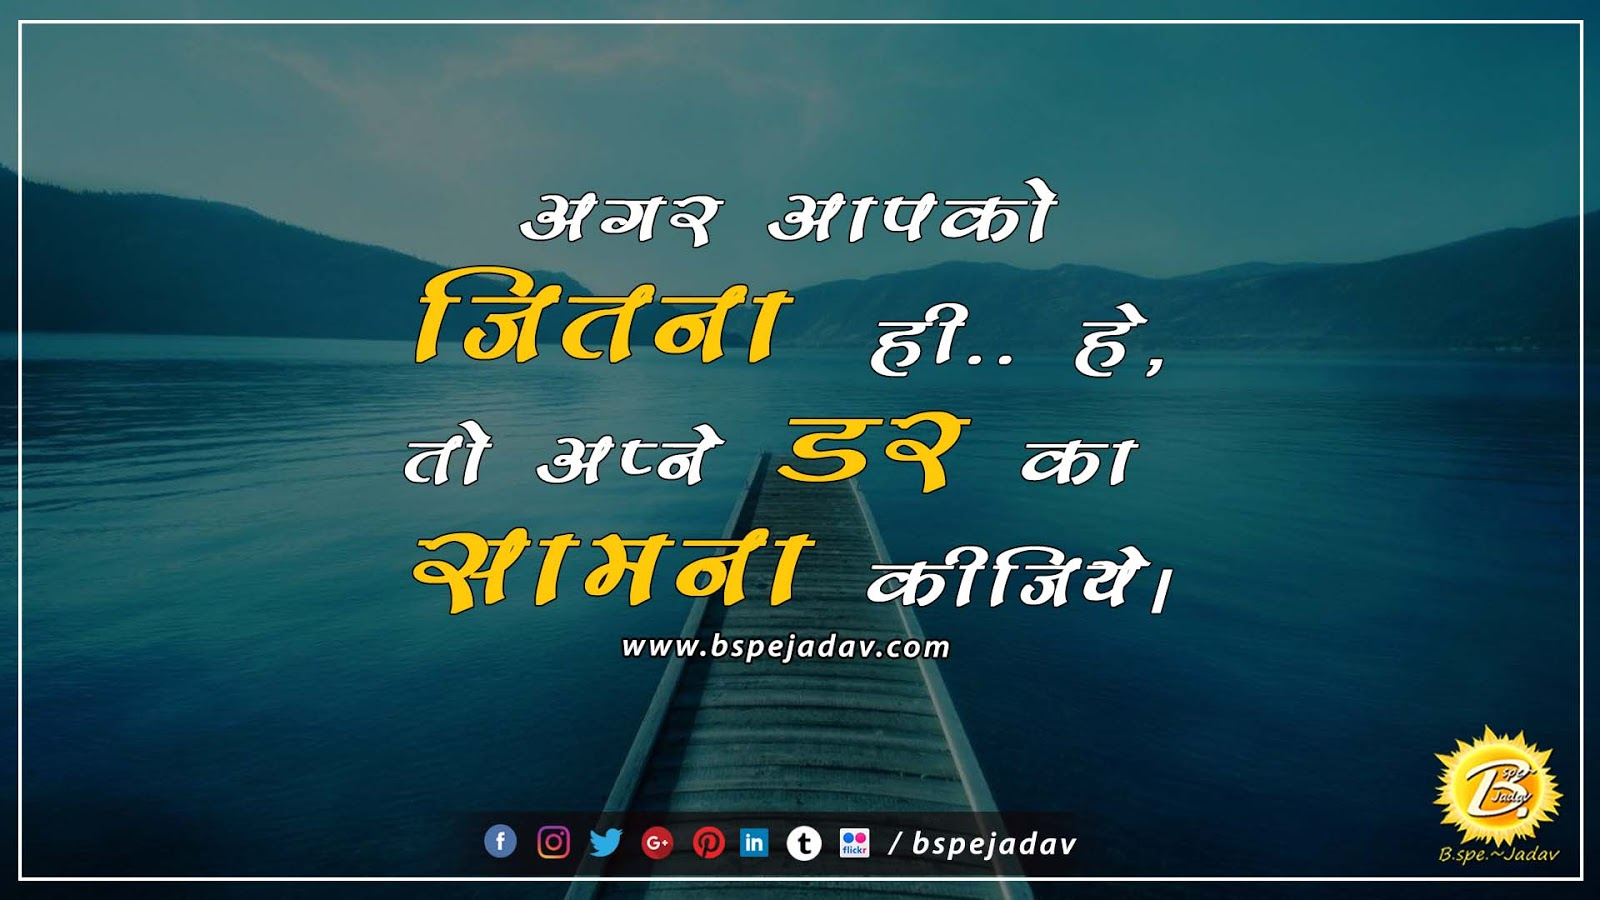 हद सवचर Hindi Motivational Quotes Bspe